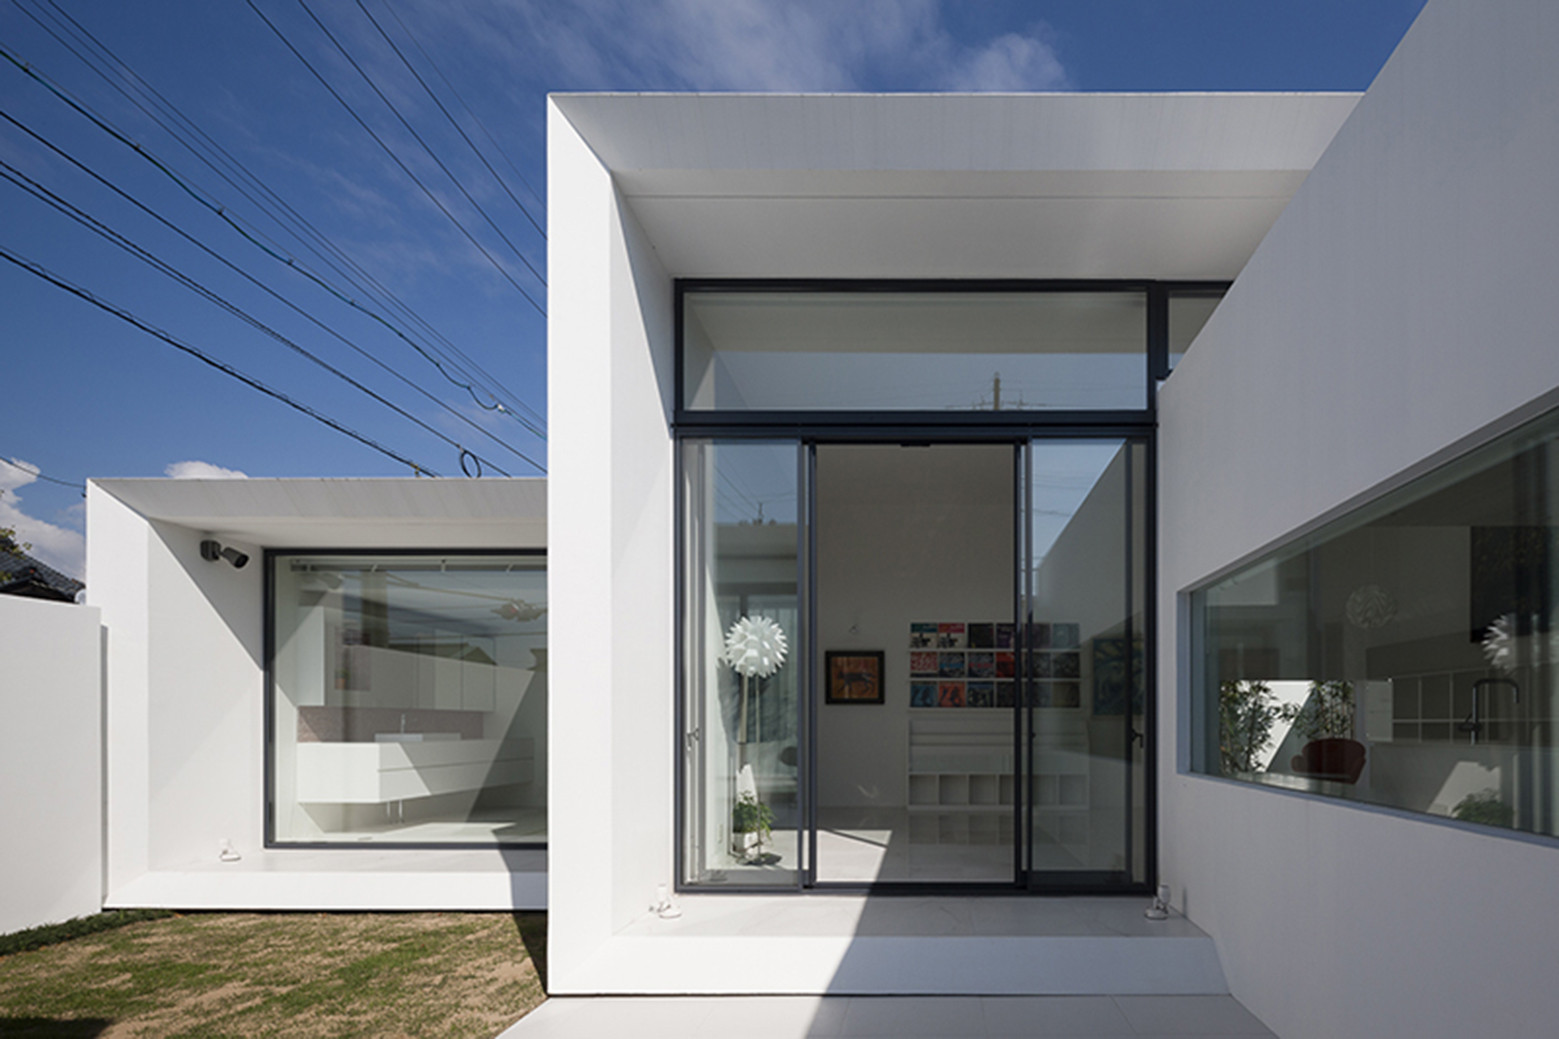 The House for Contemporary Art / F.A.D.S. | ArchDaily